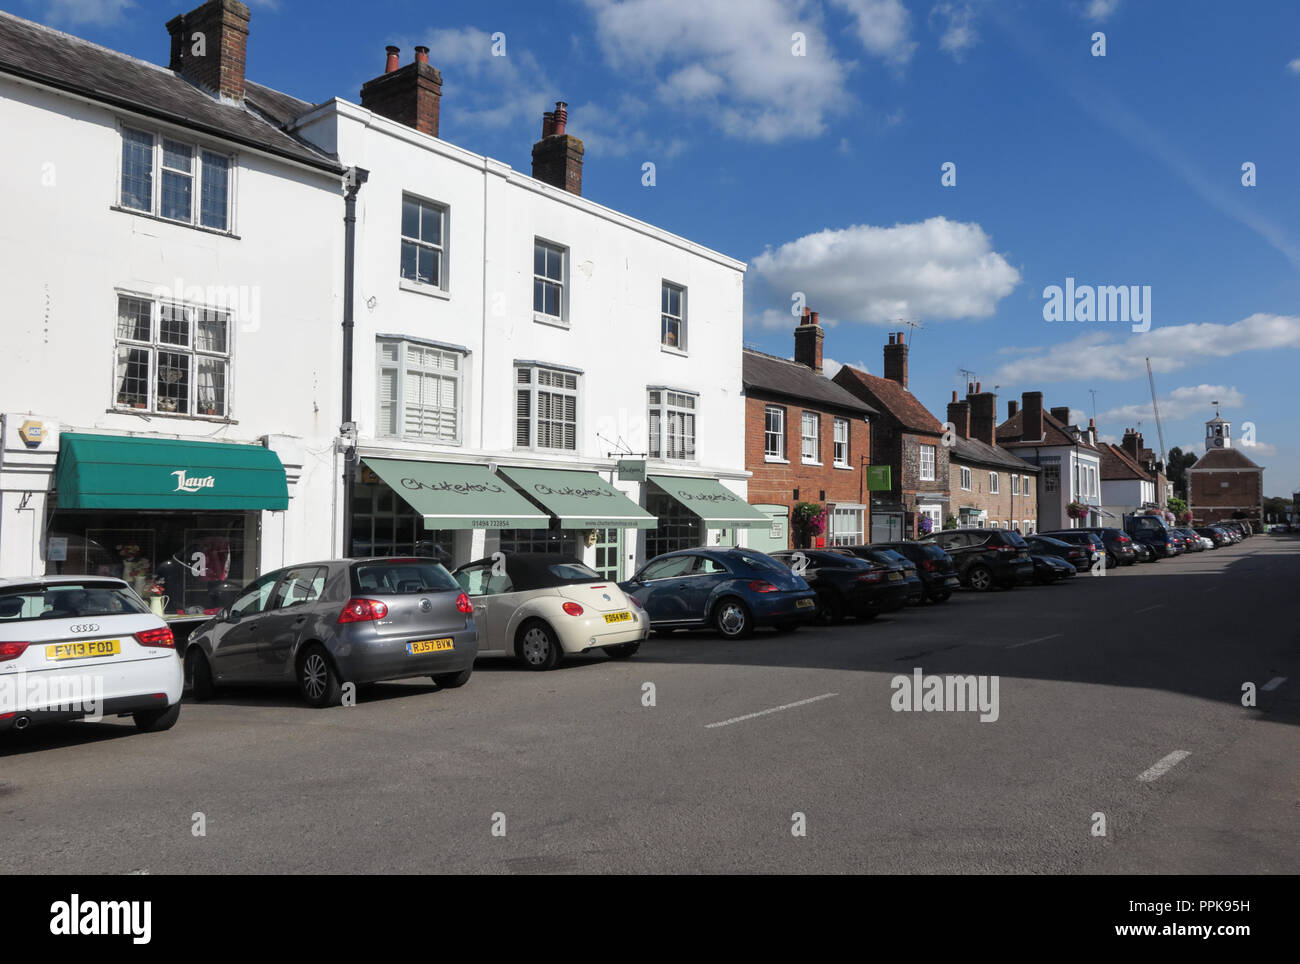 High Street, Amersham, Buckinghamshire - Stock Image